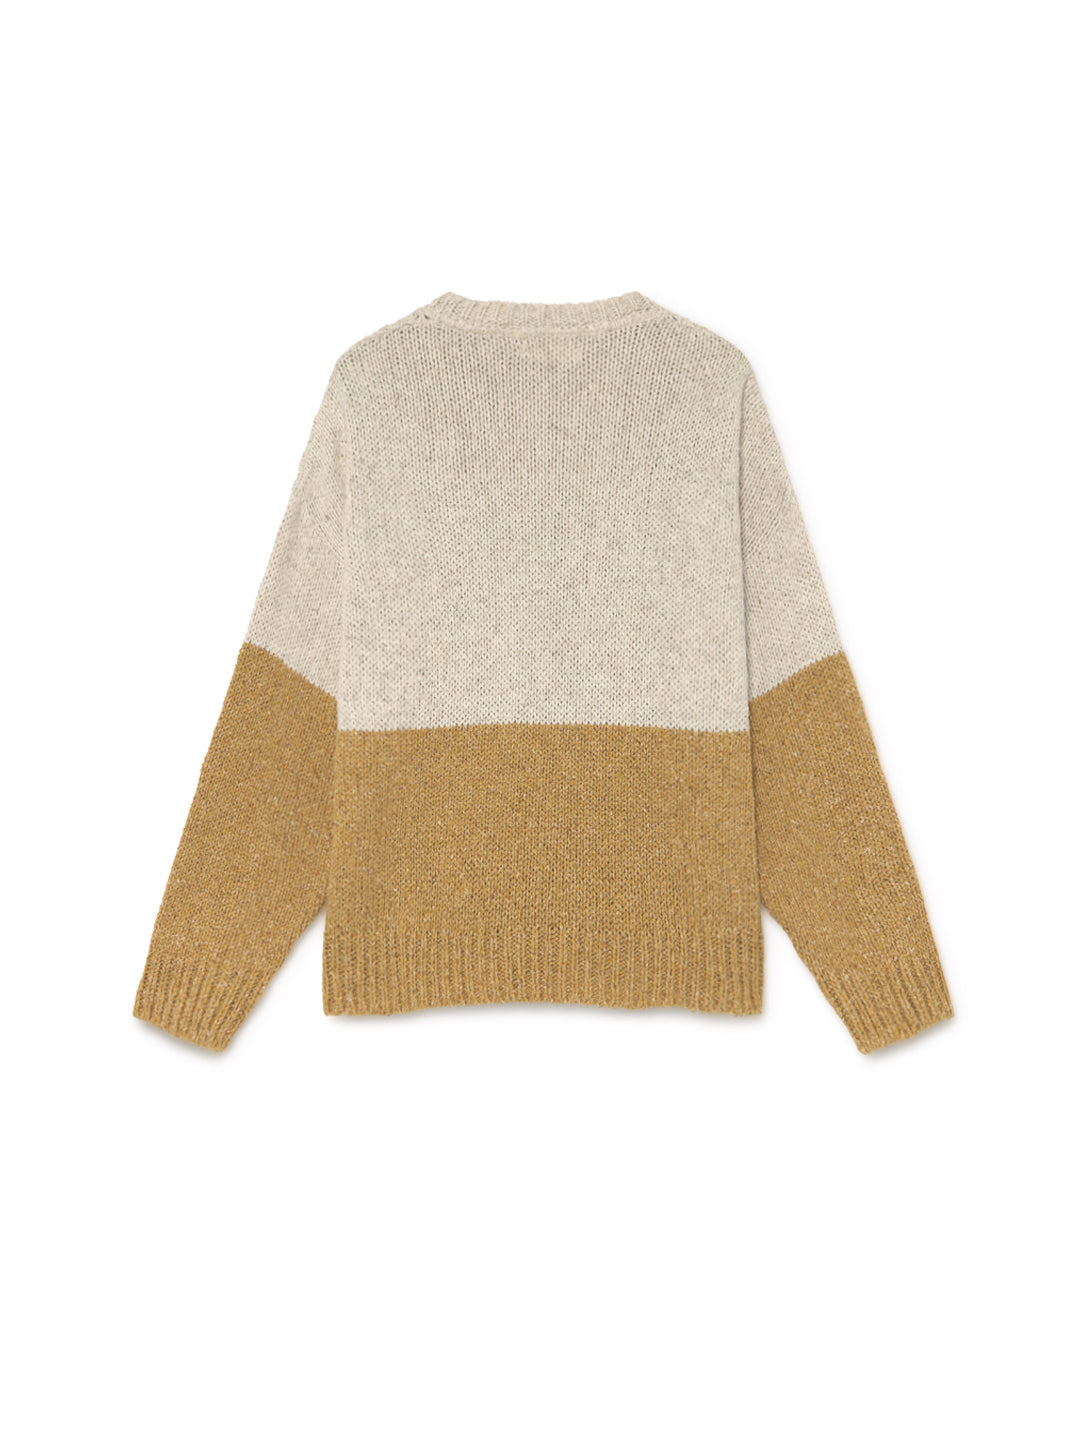 TWOTHIRDS Womens Knit: Apataki - Sunset back